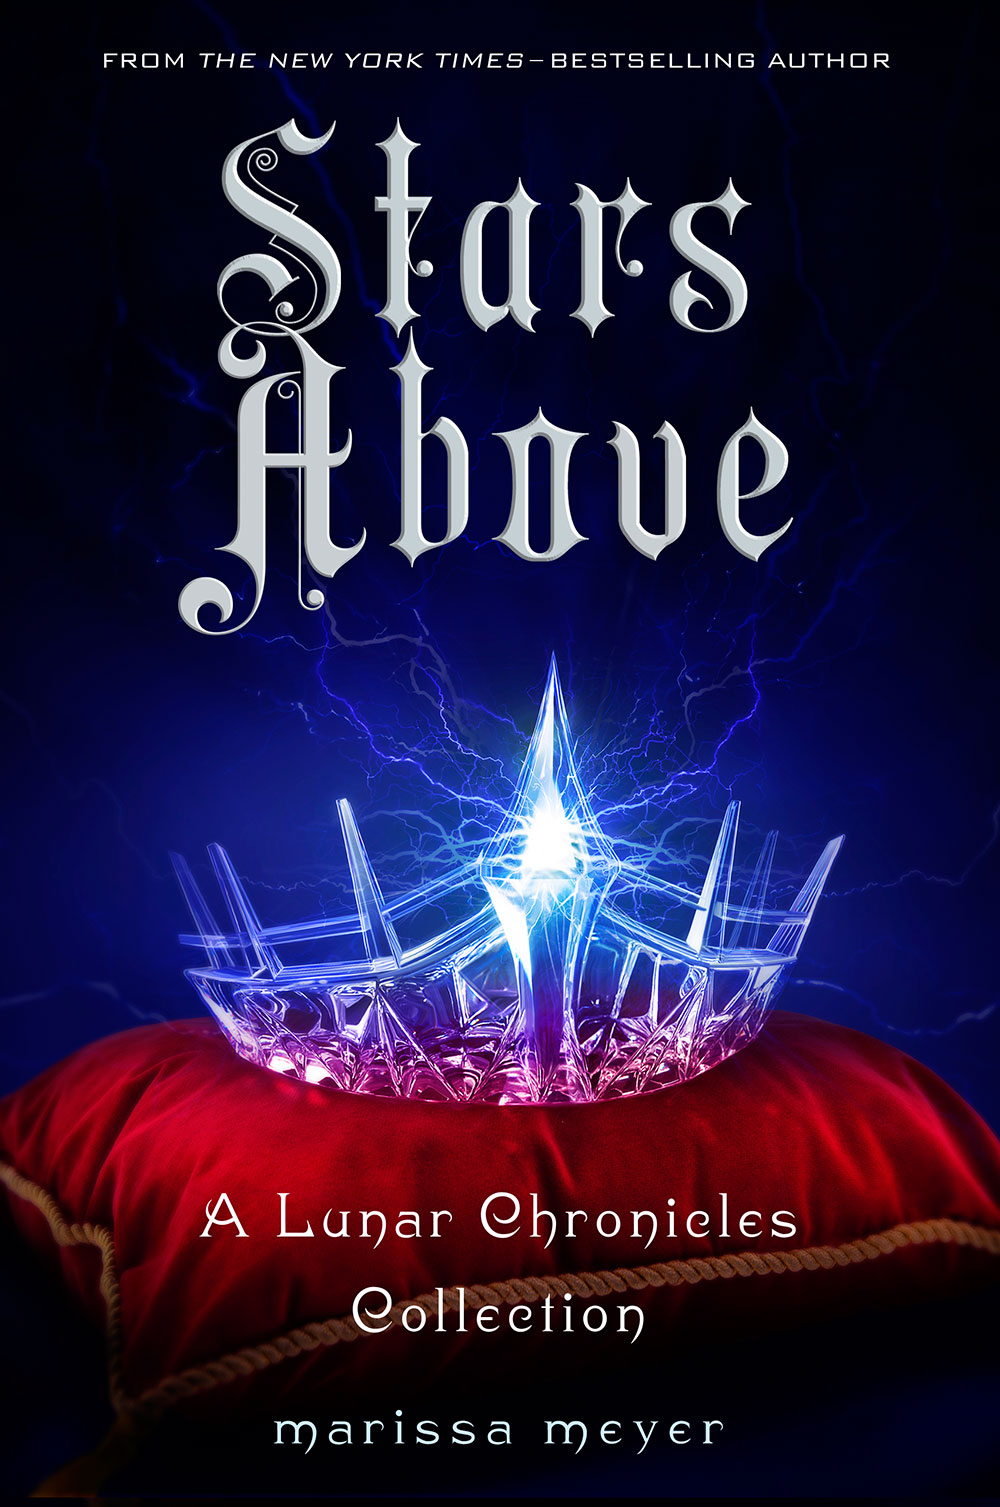 http://nothingbutn9erz.blogspot.co.at/2016/02/stars-above-marissa-meyer-rezension.html